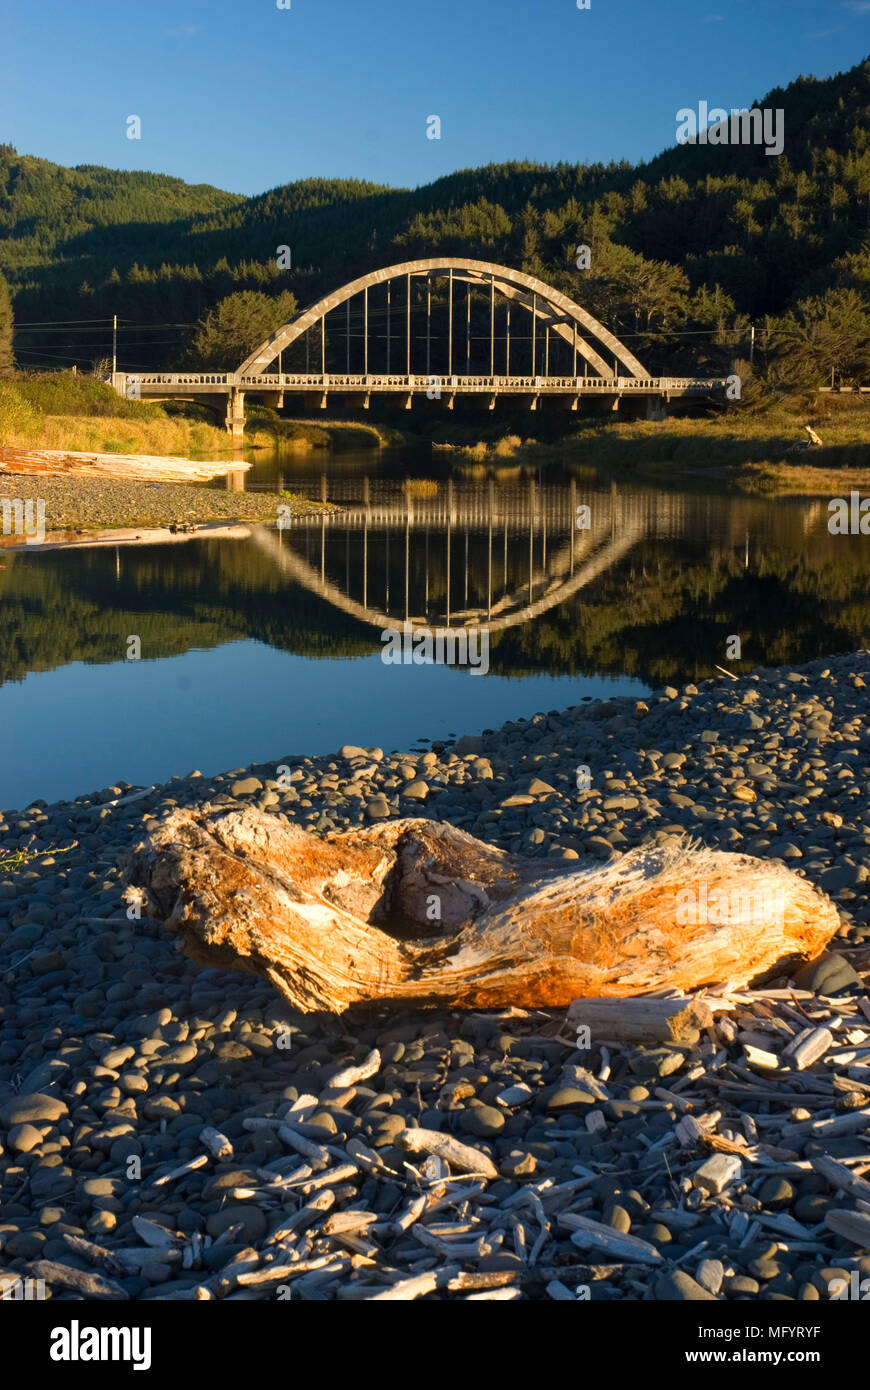 Tenmile Creek Bridge, Stonefield Beach State Park, Oregon - Stock Image